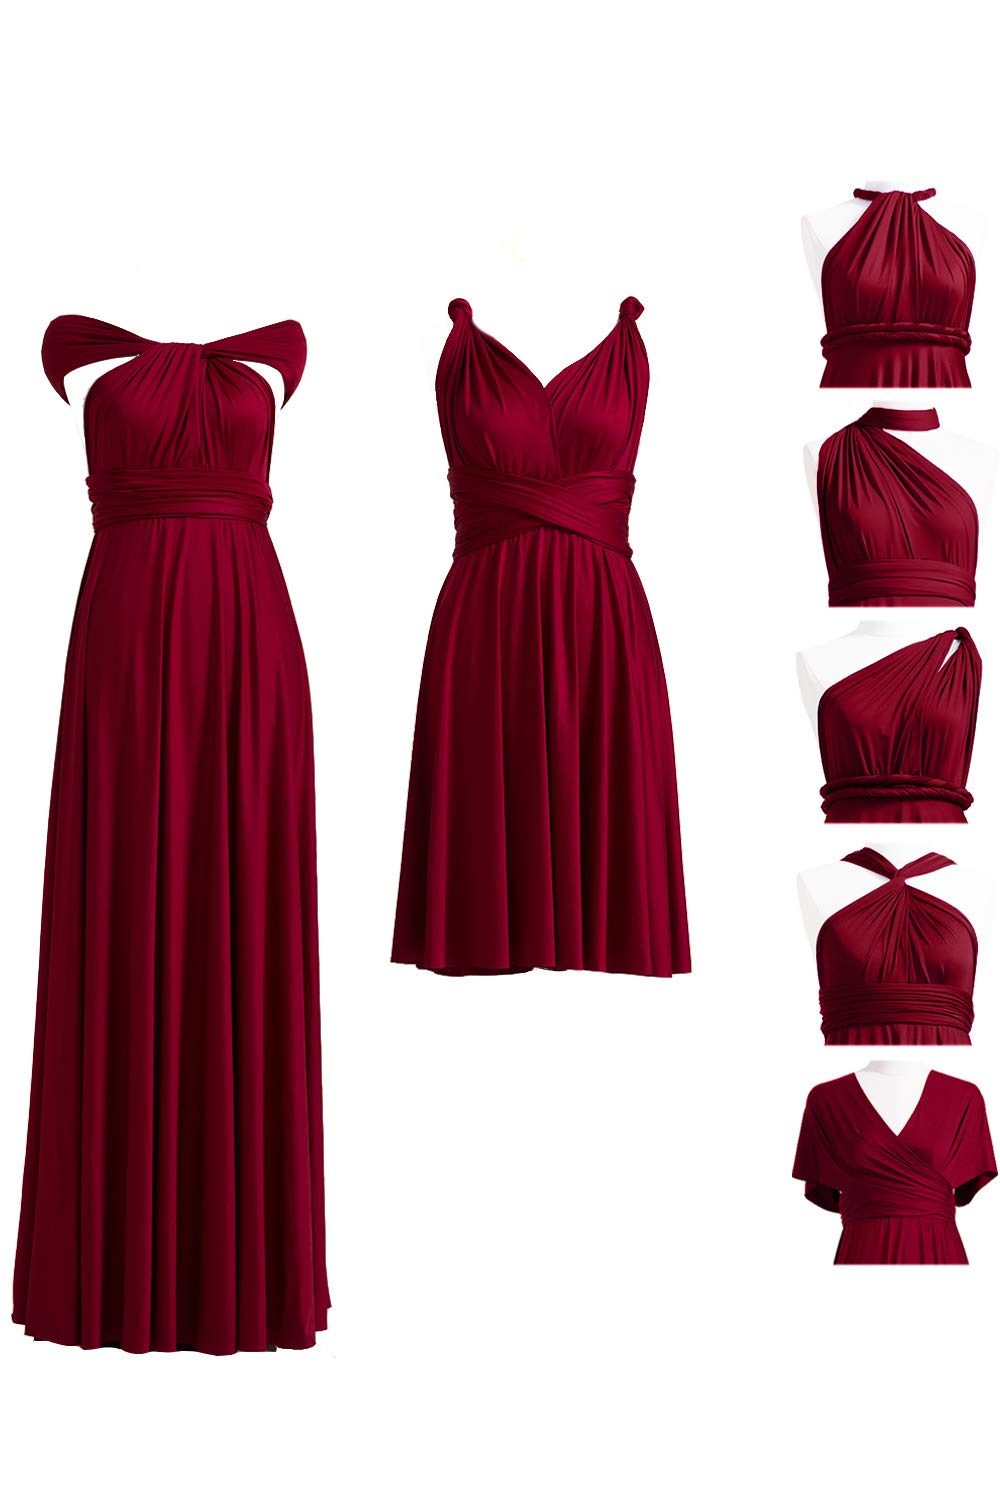 72STYLES Burgundy Infinity Dress with Bandeau, Convertible Dress,  Bridesmaid Dress, Long,Short, Plus Size, Multi-Way Dress, Twist Wrap Dress